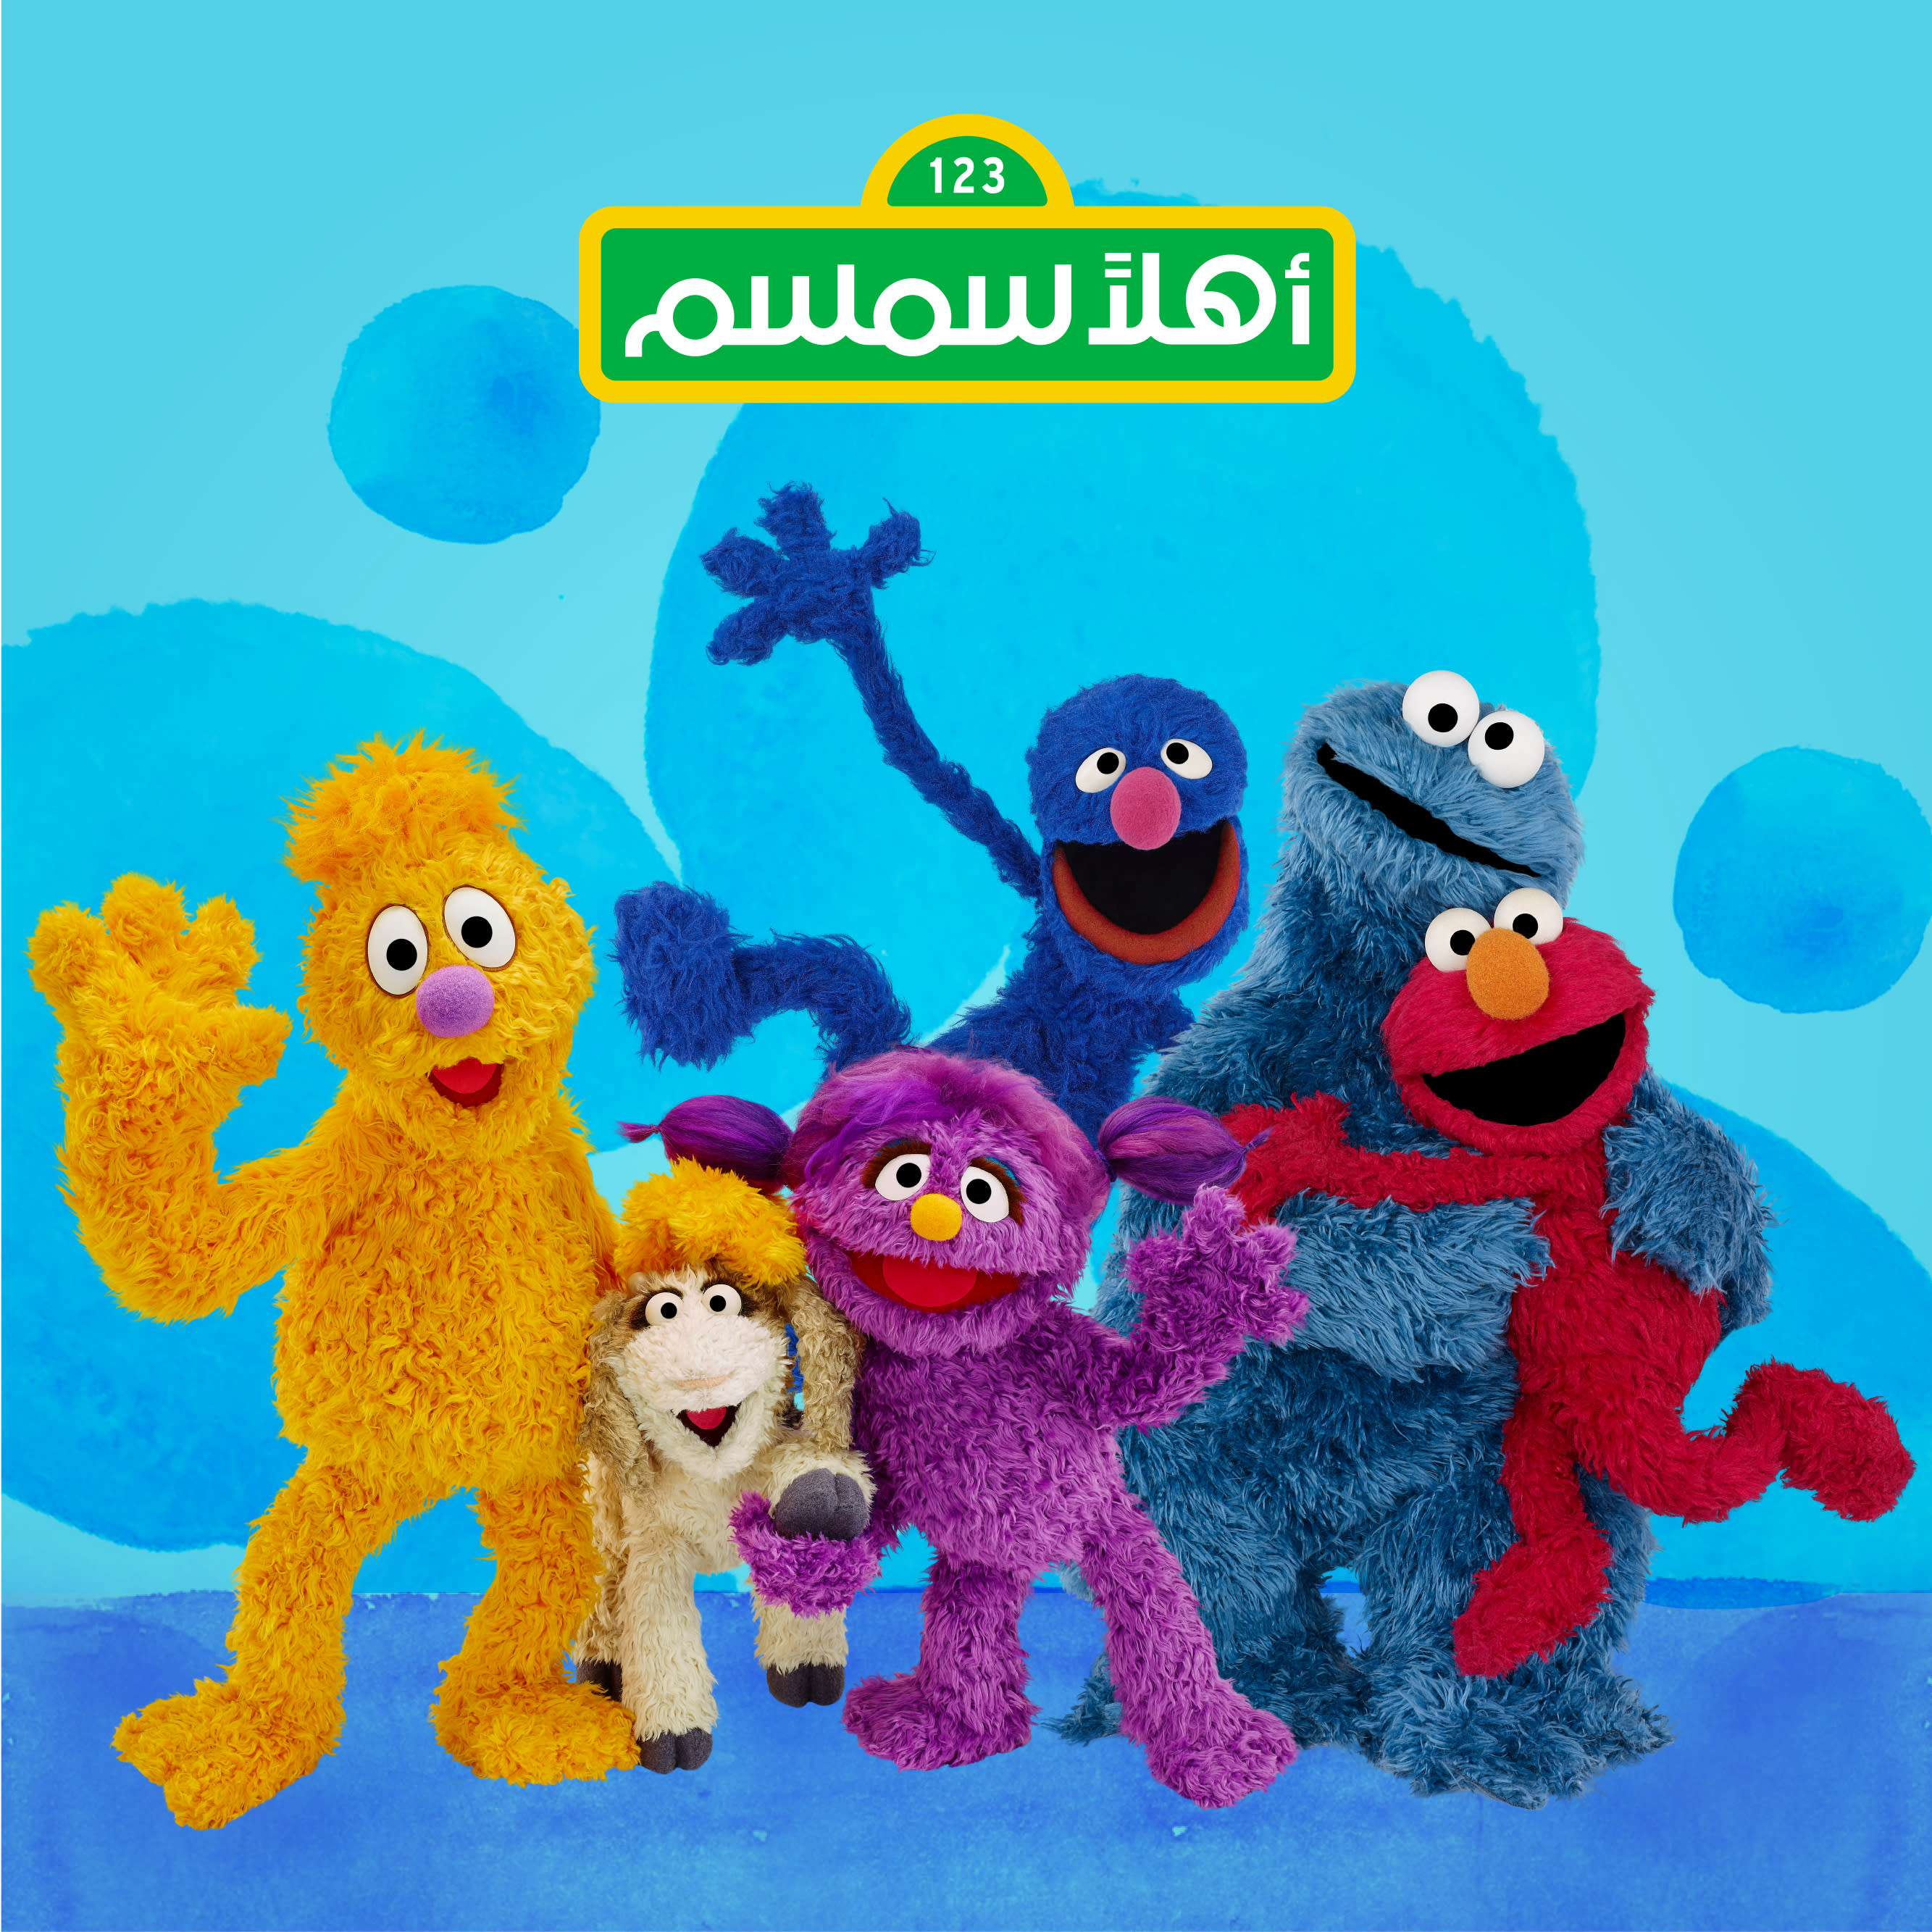 """This image released by Sesame Workshop shows characters, from left, Jad, Ma'zooza, Basma, grover, background center, Cookie Monster and Elmo. Sesame Workshop — the nonprofit, educational organization behind """"Sesame Street"""" — has teamed up with the International Rescue Committee — to launch a new, locally produced Arabic TV program """"Welcome Sesame"""" for the hundreds of thousands of children dealing with displacement in Syria, Iraq, Jordan and Lebanon. (Sesame Workshop via AP)"""